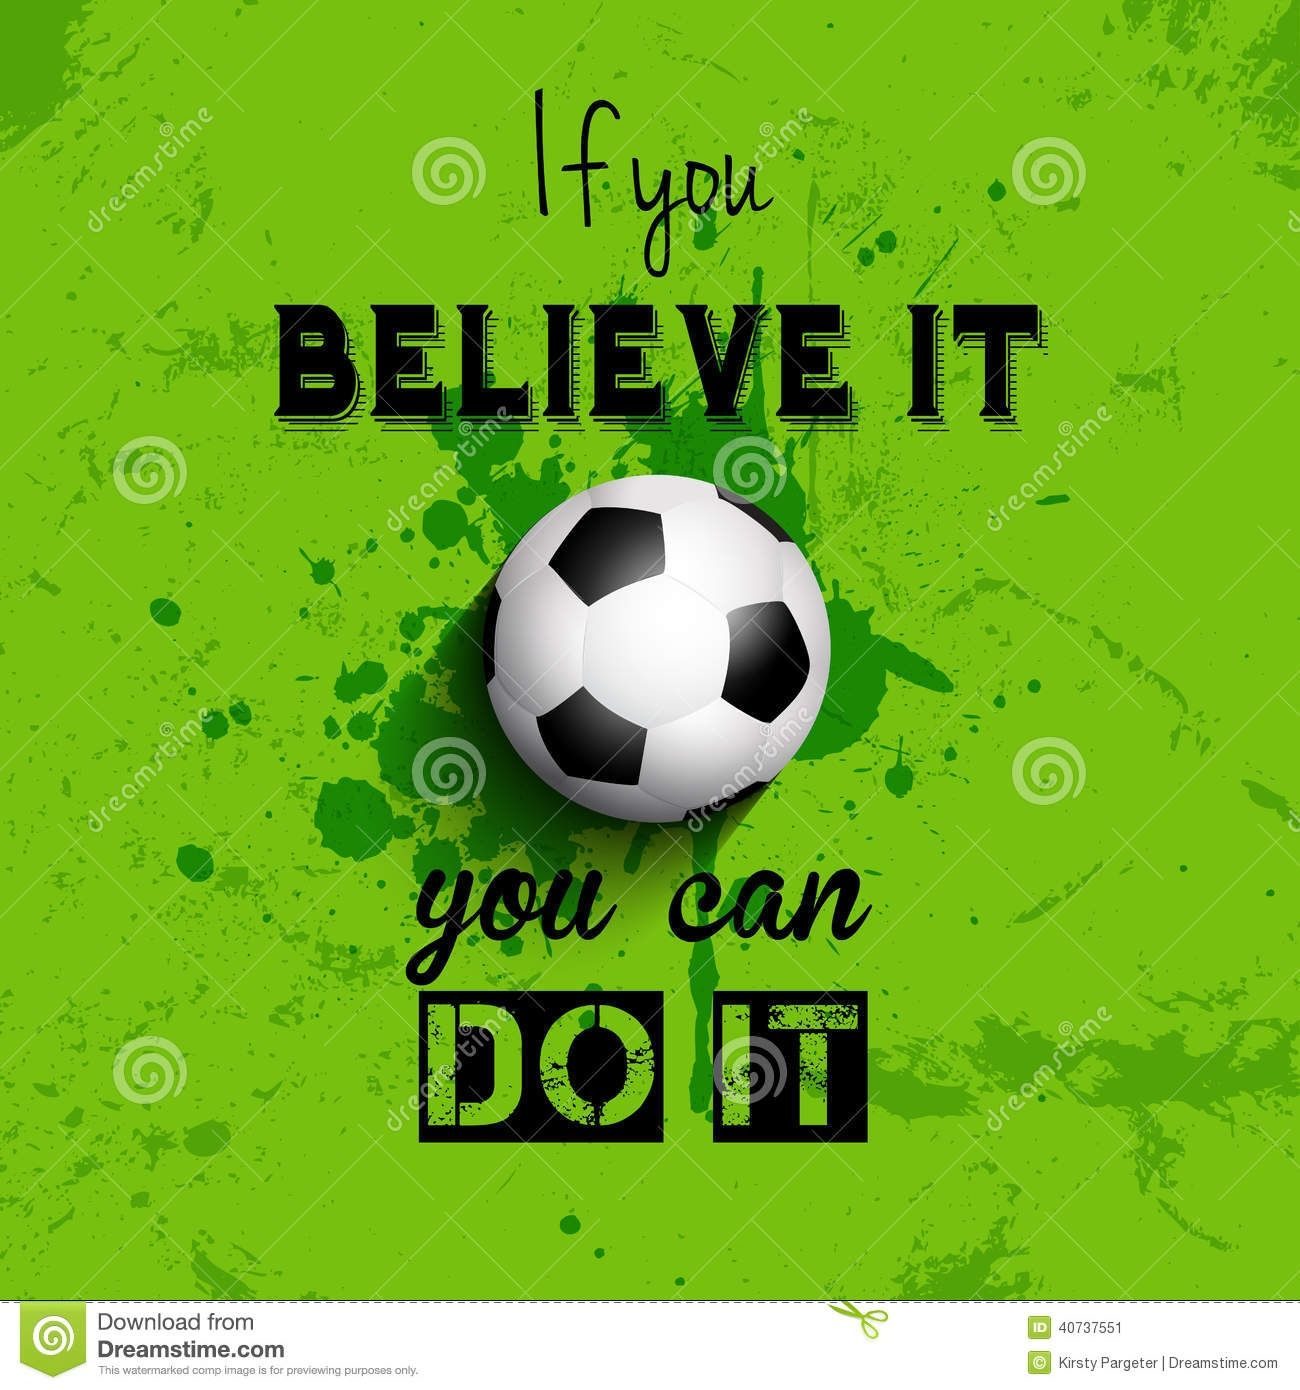 Inspirational Soccer Quotes And Sayings: Other: Event Find Funny Soccer Quotes Graphics, Event